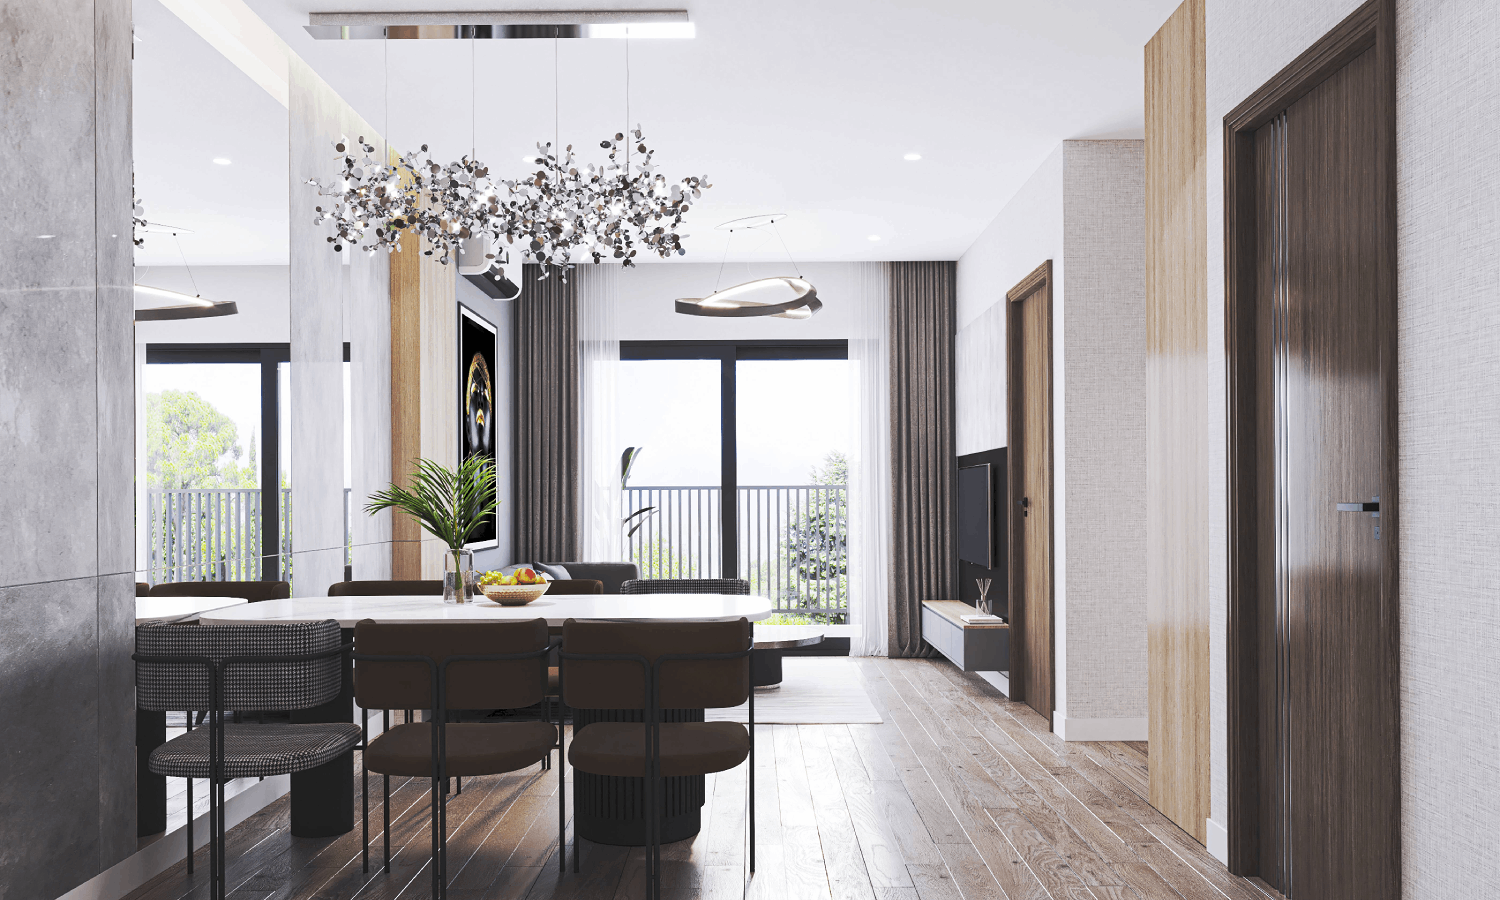 Thiết kế trong xanh trong dự án căn hộ BID residence văn khê